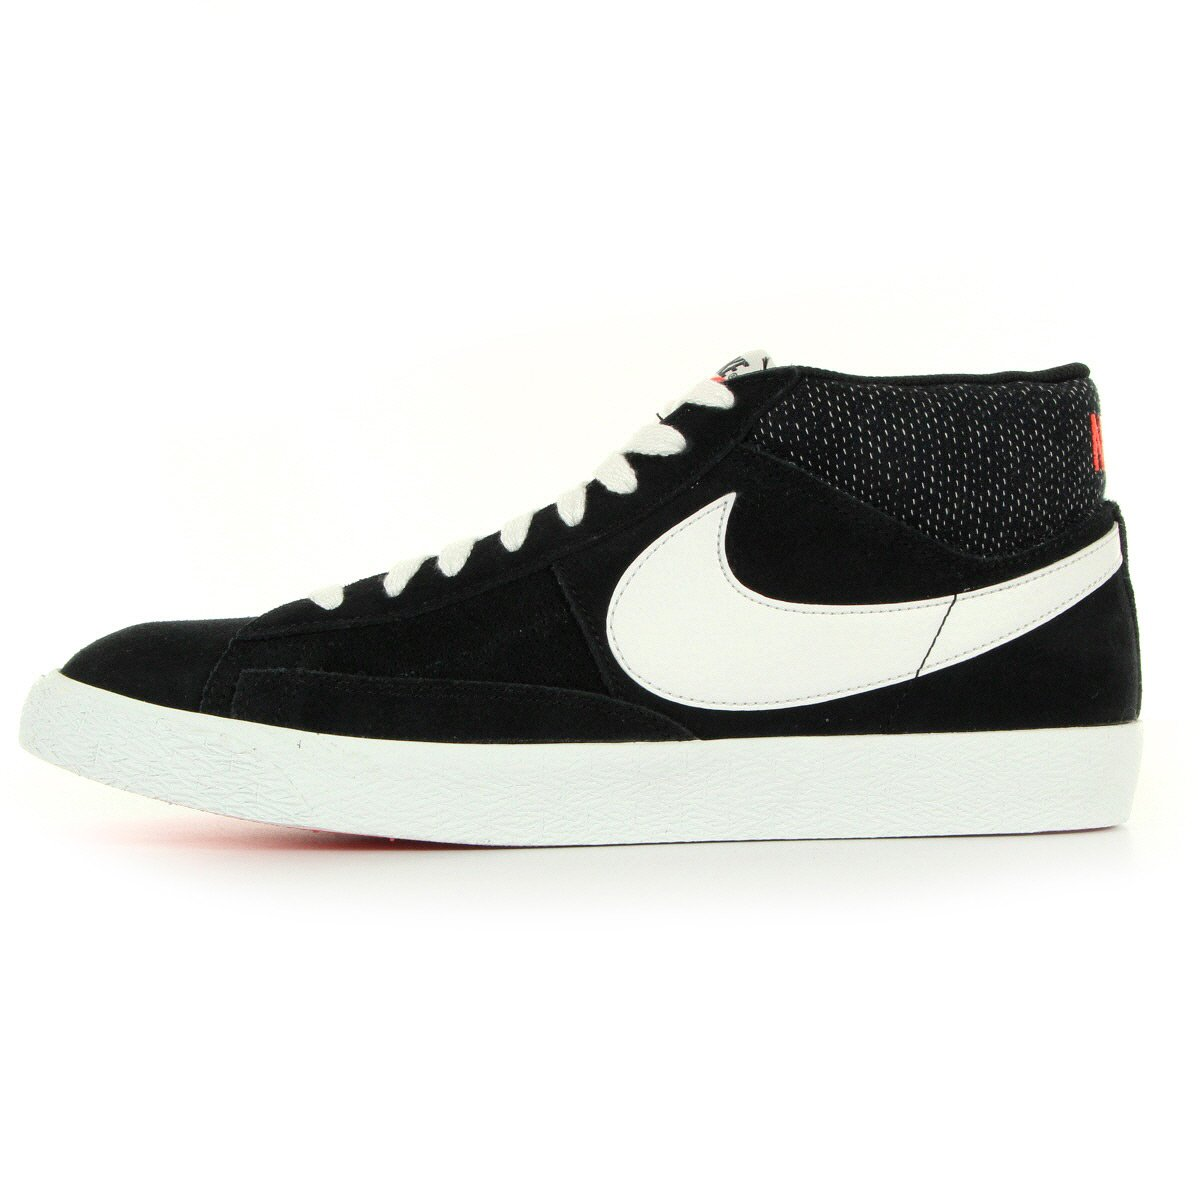 new arrival f70ea 8dc4a Nike Blazer Mid 2.0 607273012, Baskets Mode Homme - Black - Amazon.co.uk  Clothing